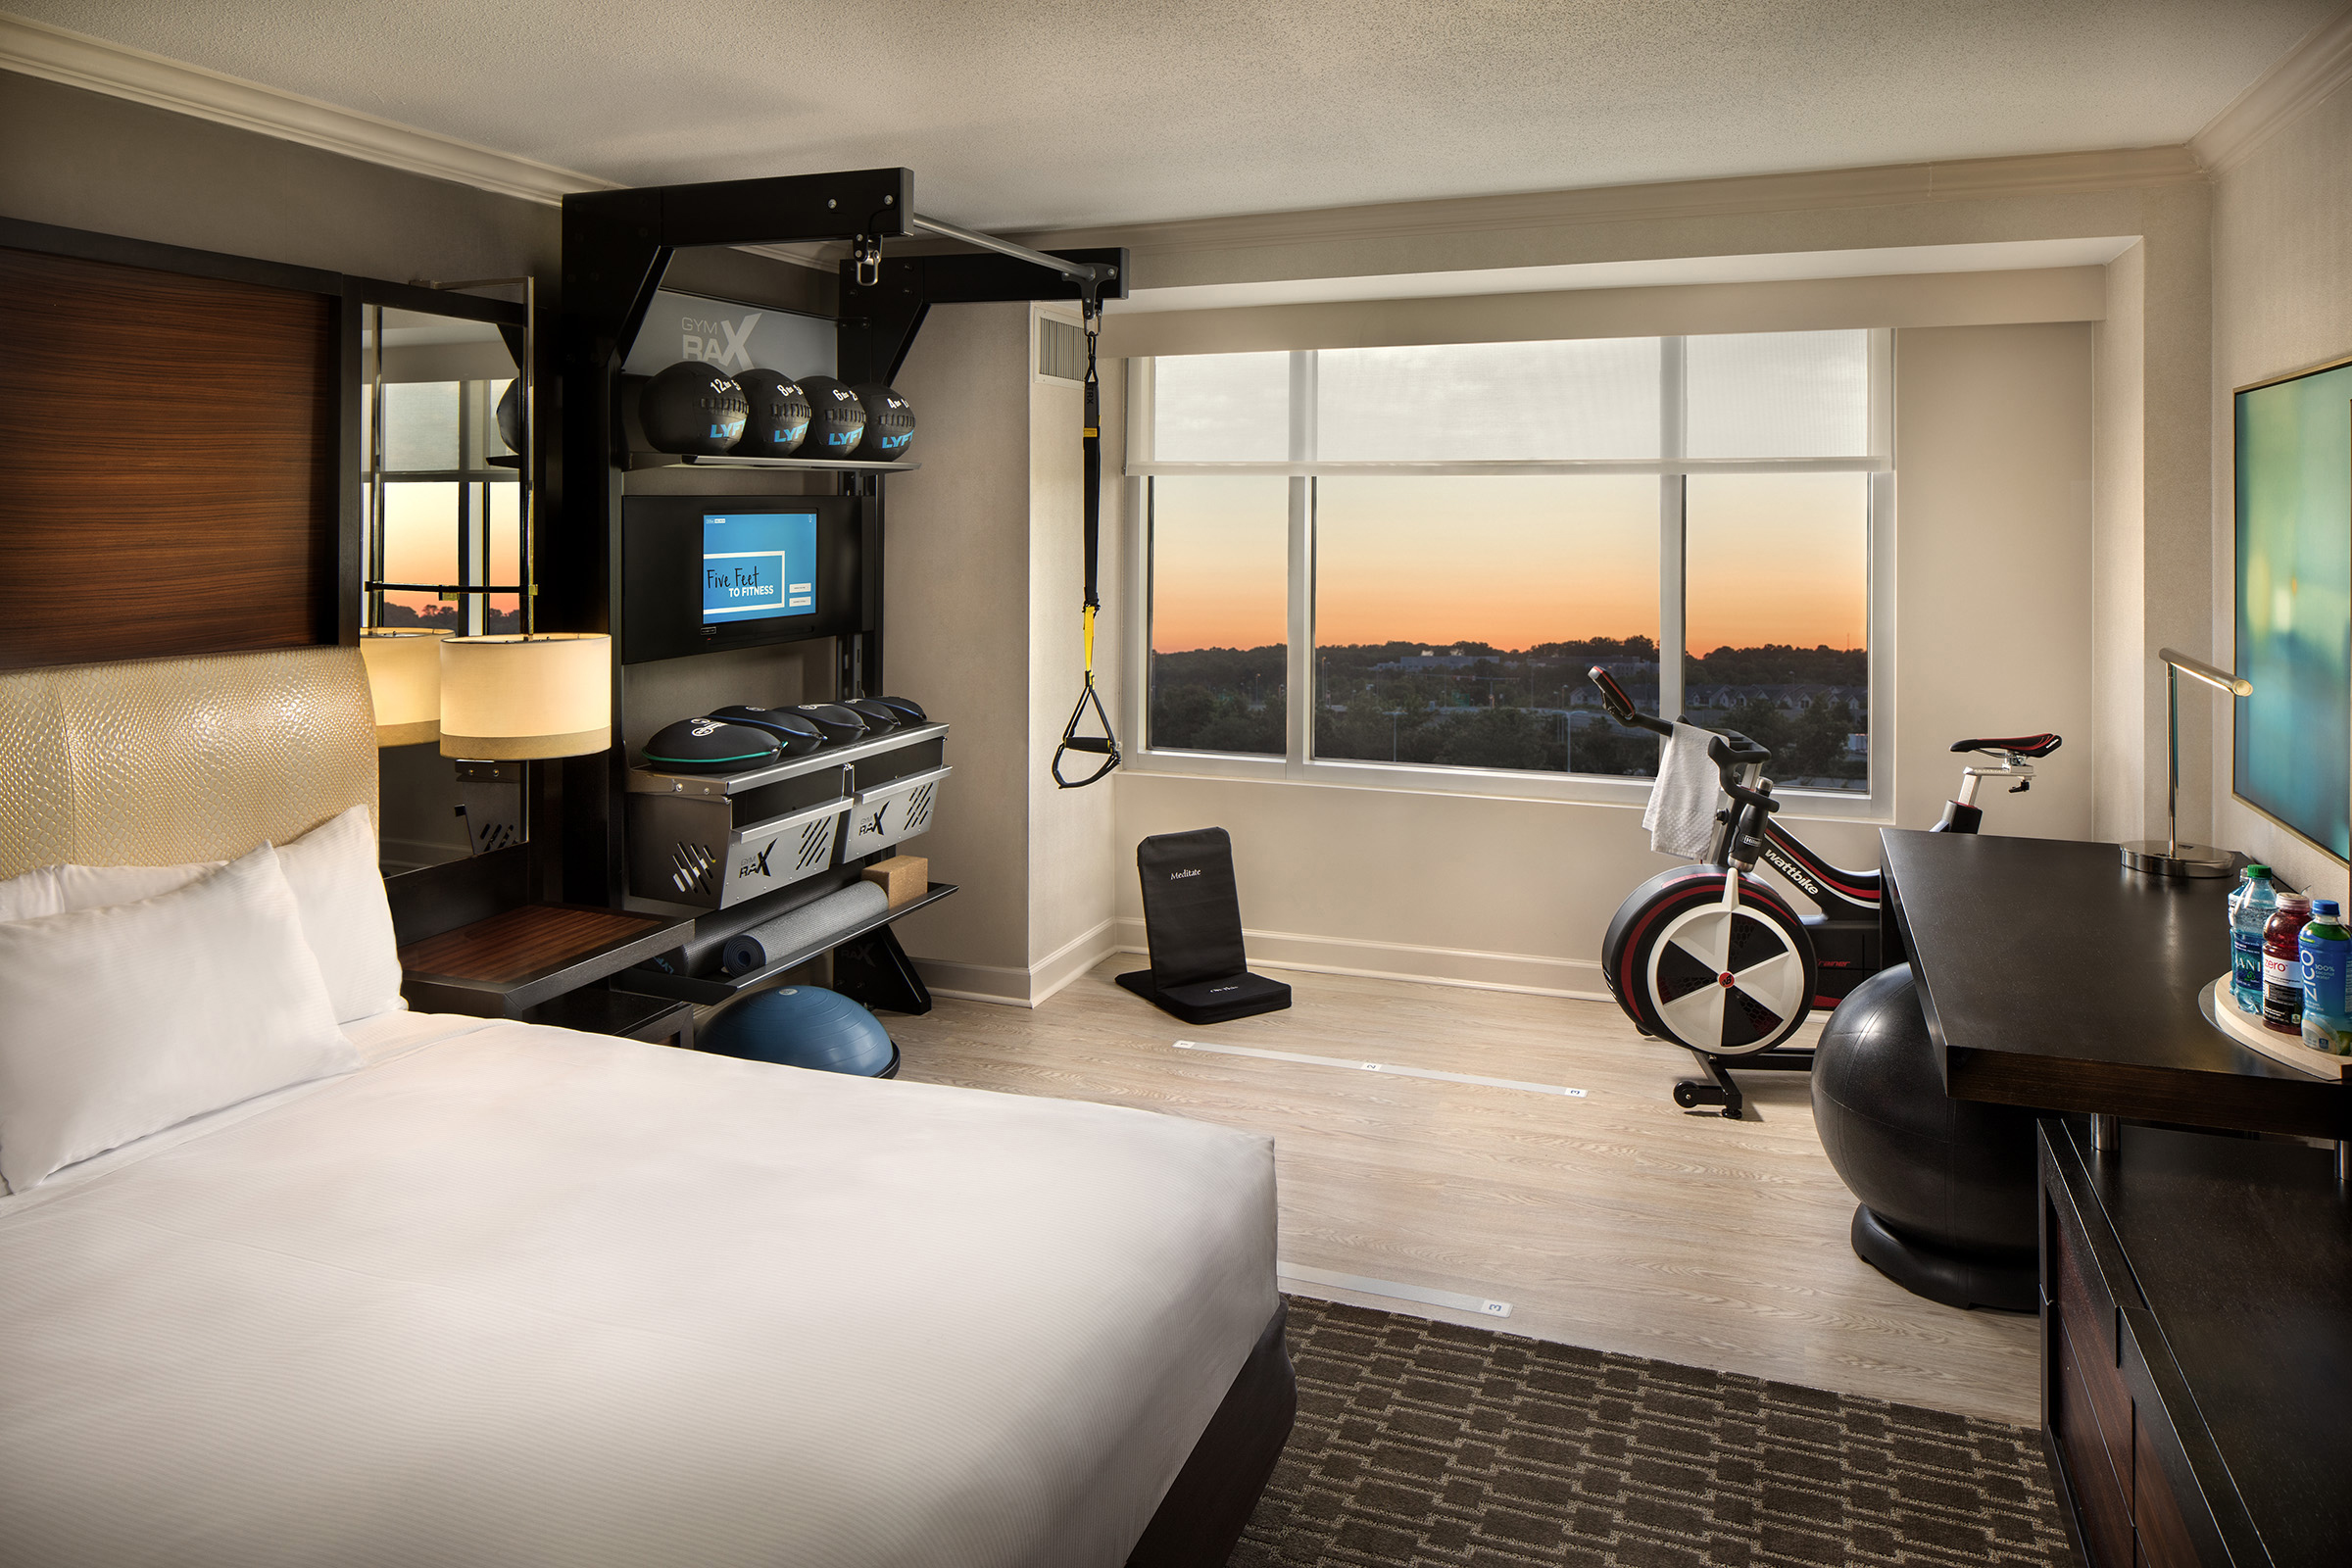 Hilton in-room wellness